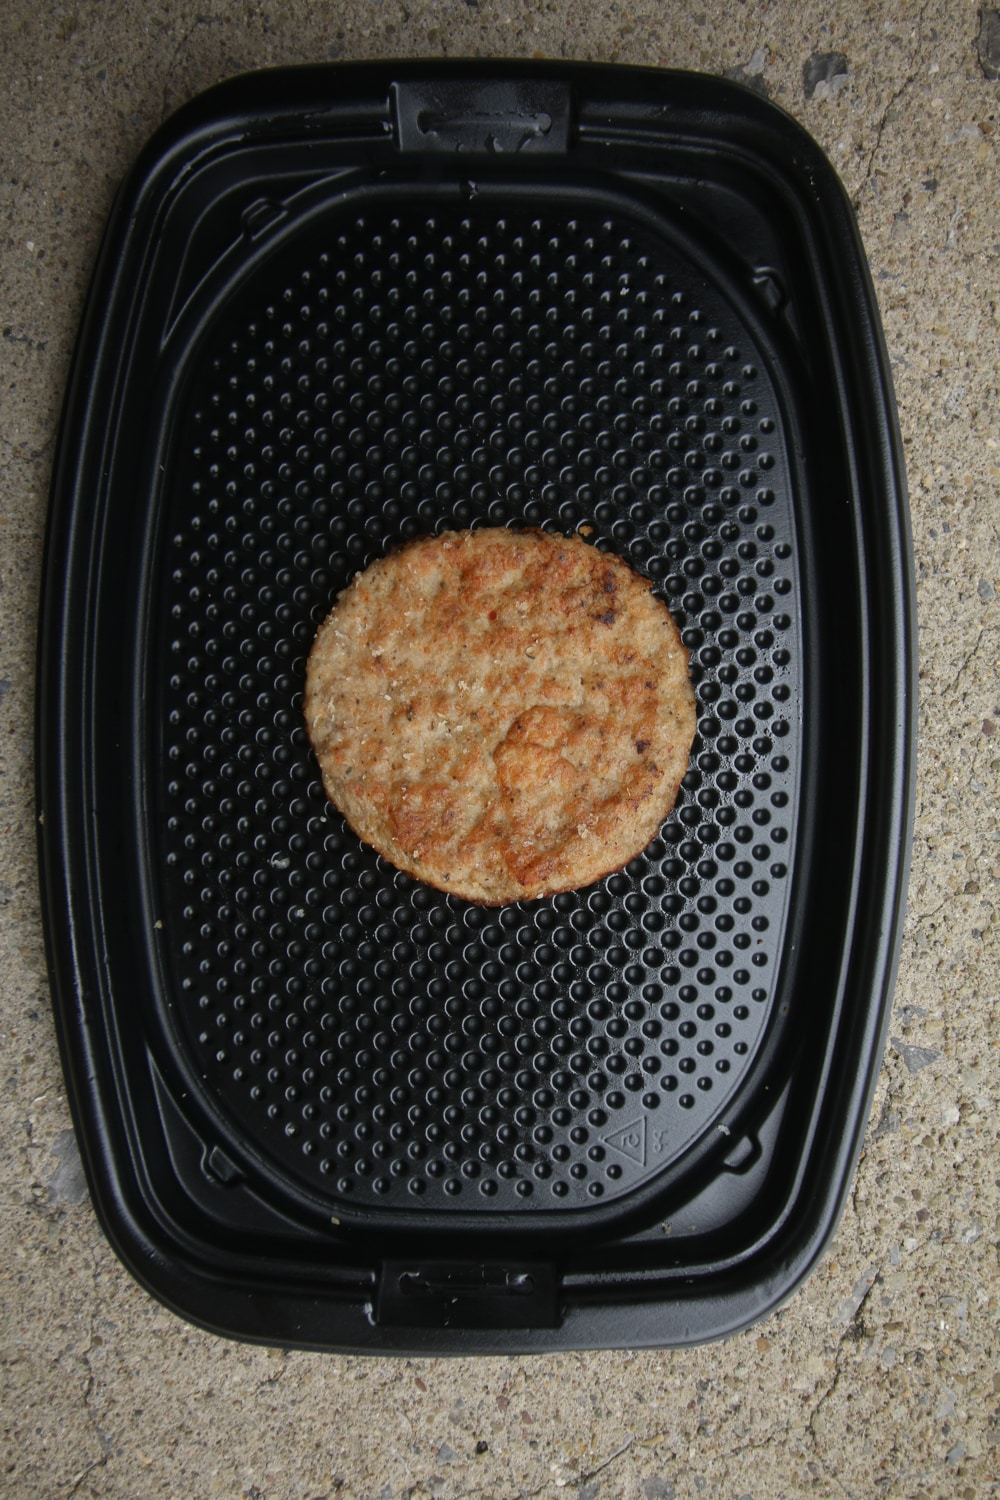 A breakfast sausage patty on a black take-out container.